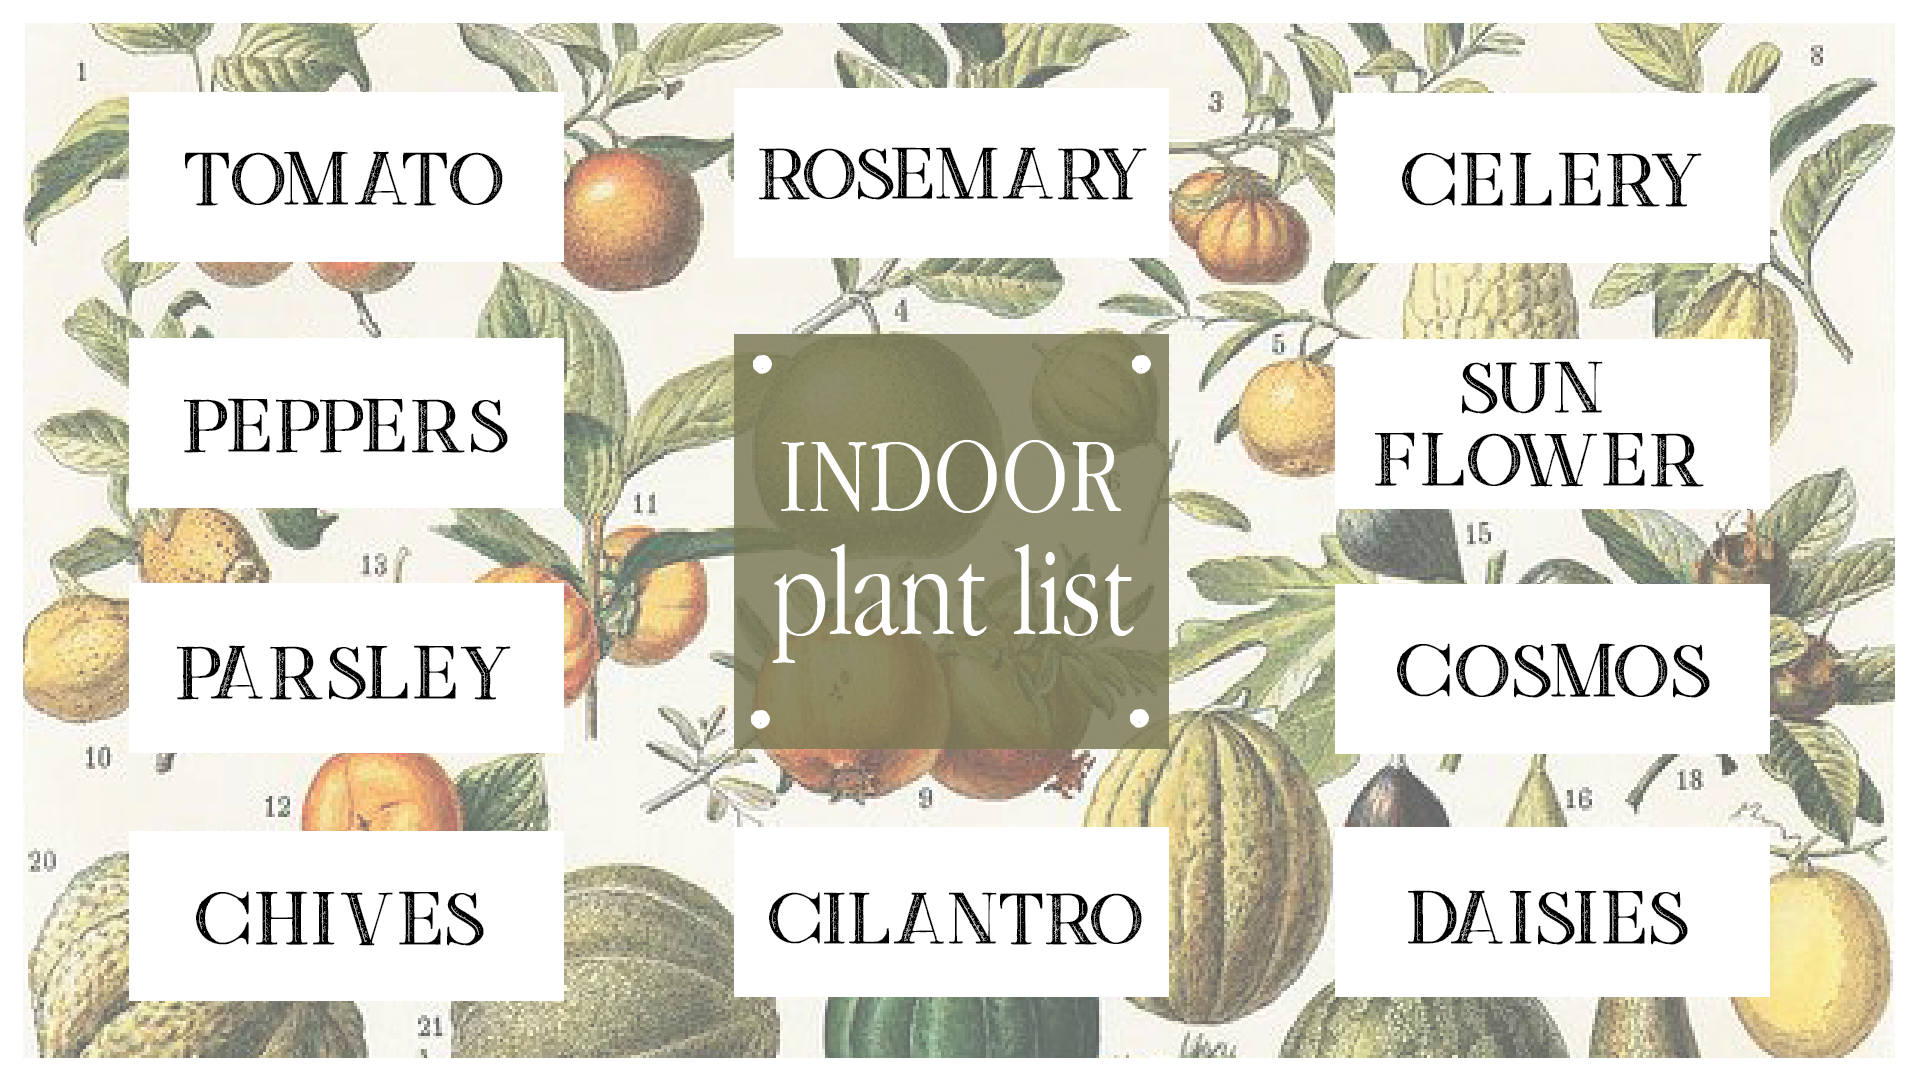 Boroughfare Home Garden Post Indoor Plant List for Seeds